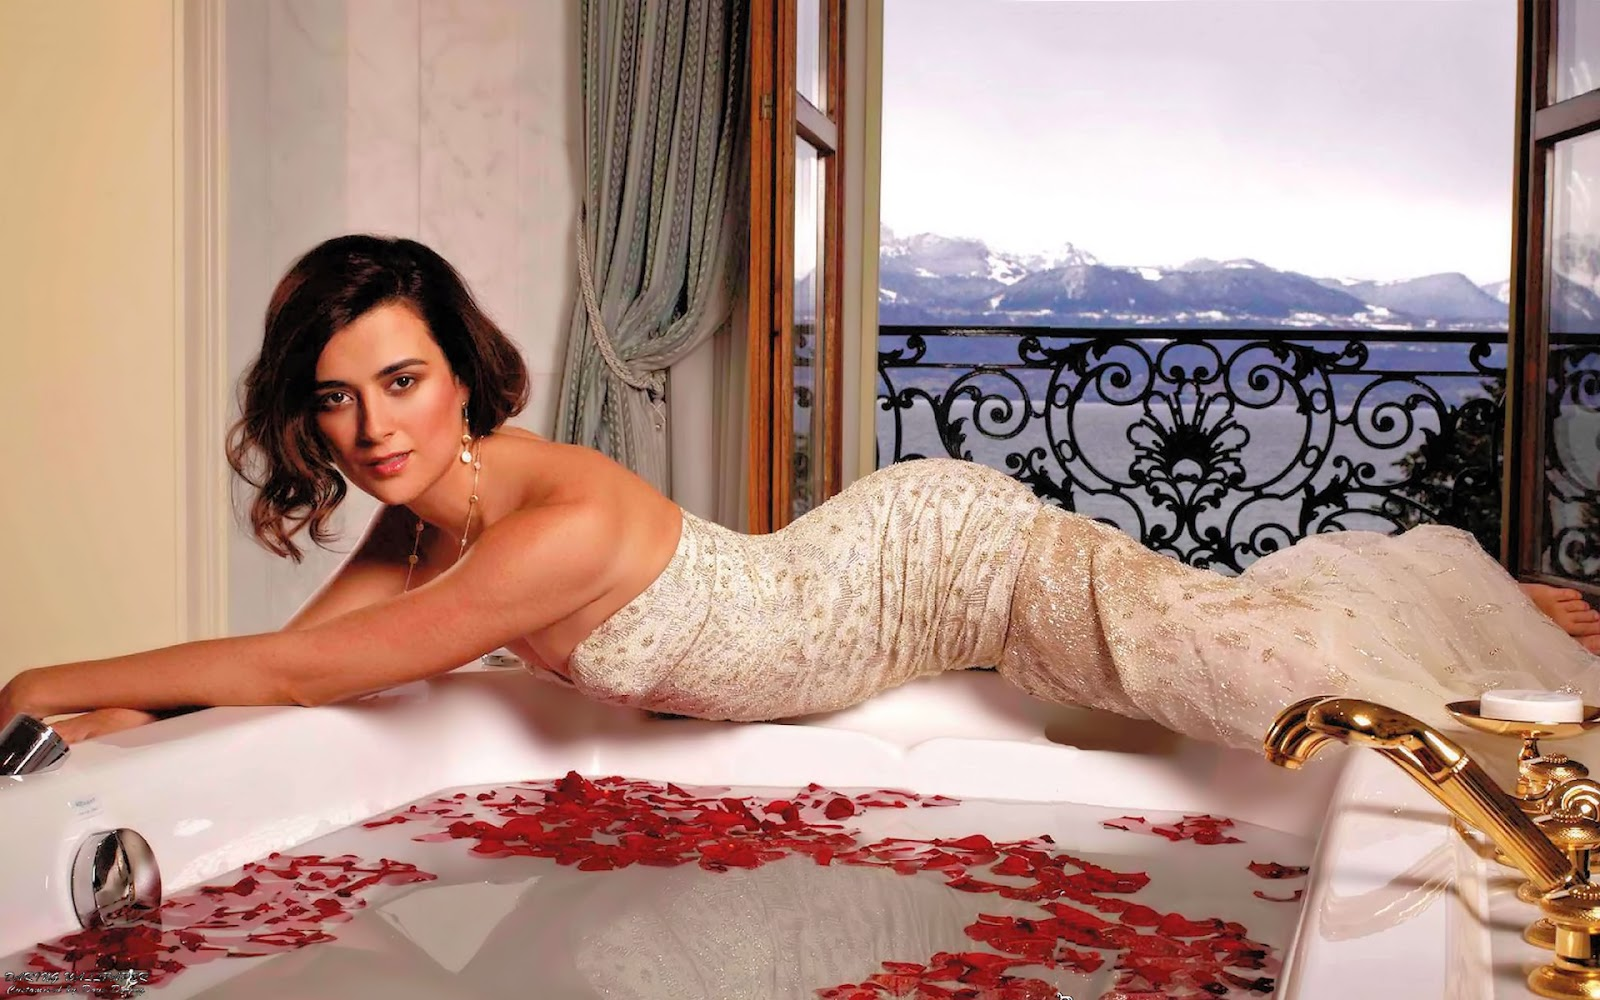 Hot Pictures Of Celebrities Cote de Pablo Hot Pictures 1600 x 1000 295 kB jpeg